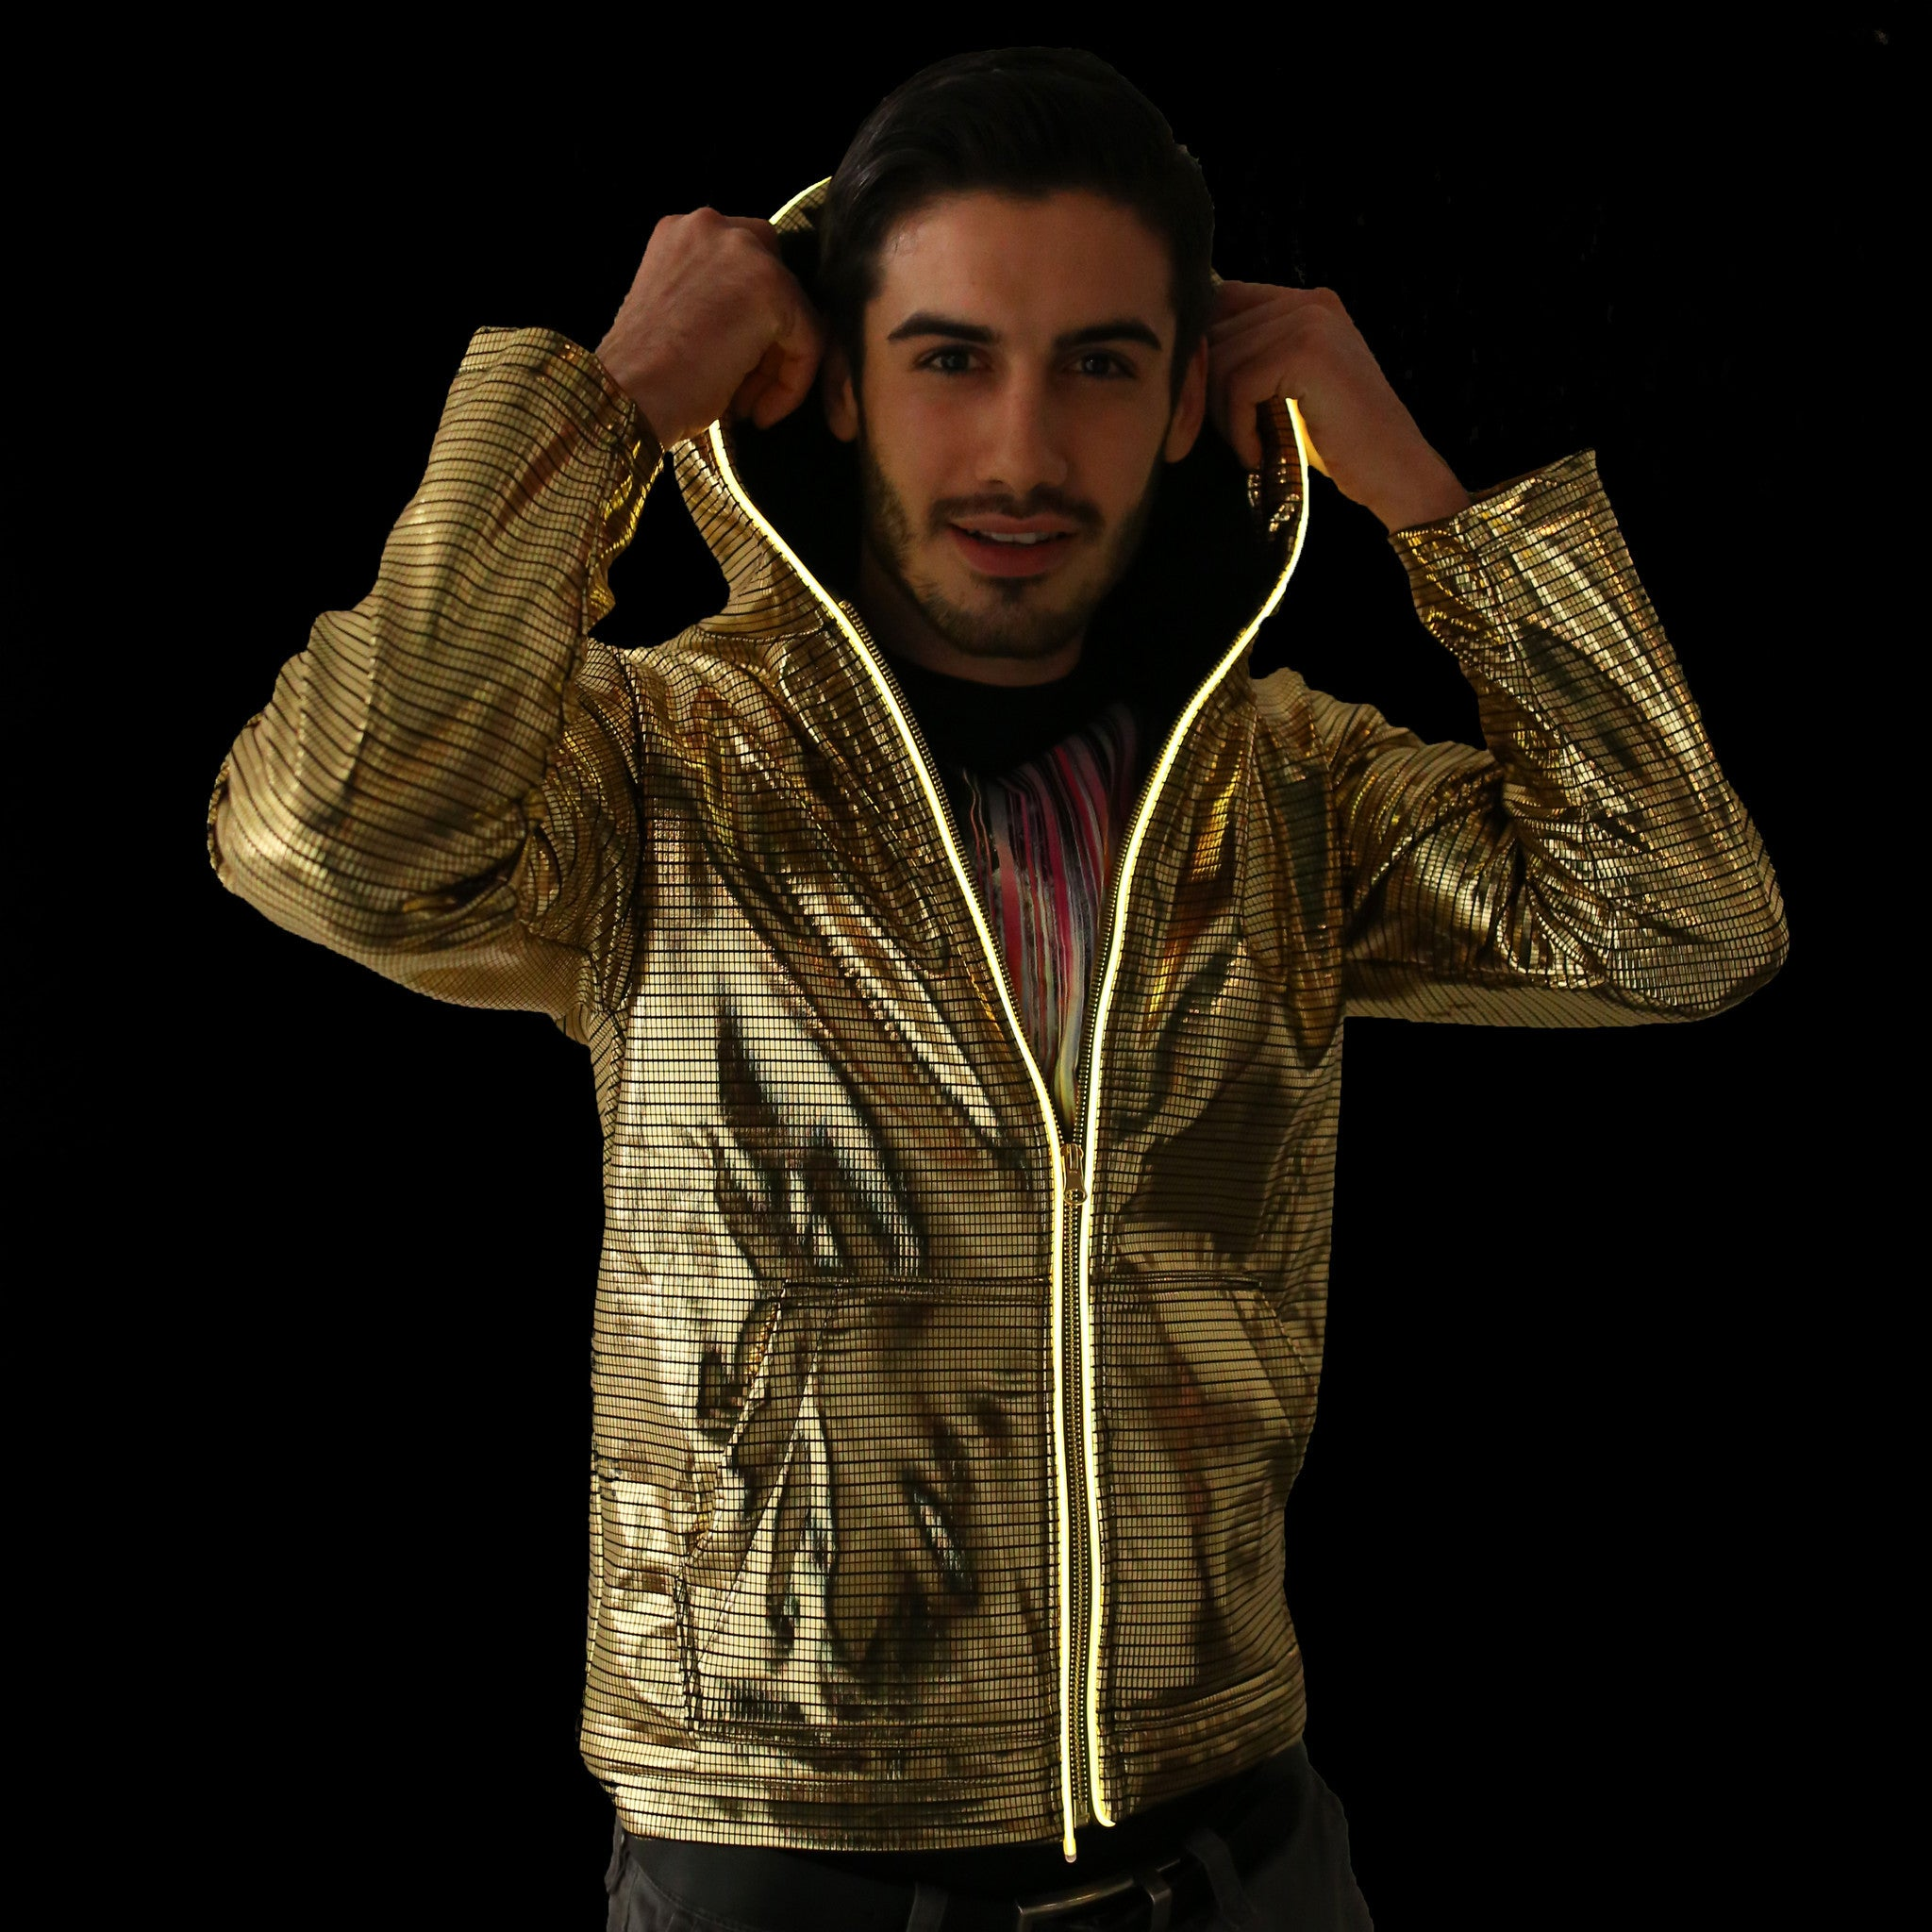 Light Up Electro Hoodie - Electric Styles | World's Number 1 Light Up Shoe Store - {product_type}} - Small / Gold - 3